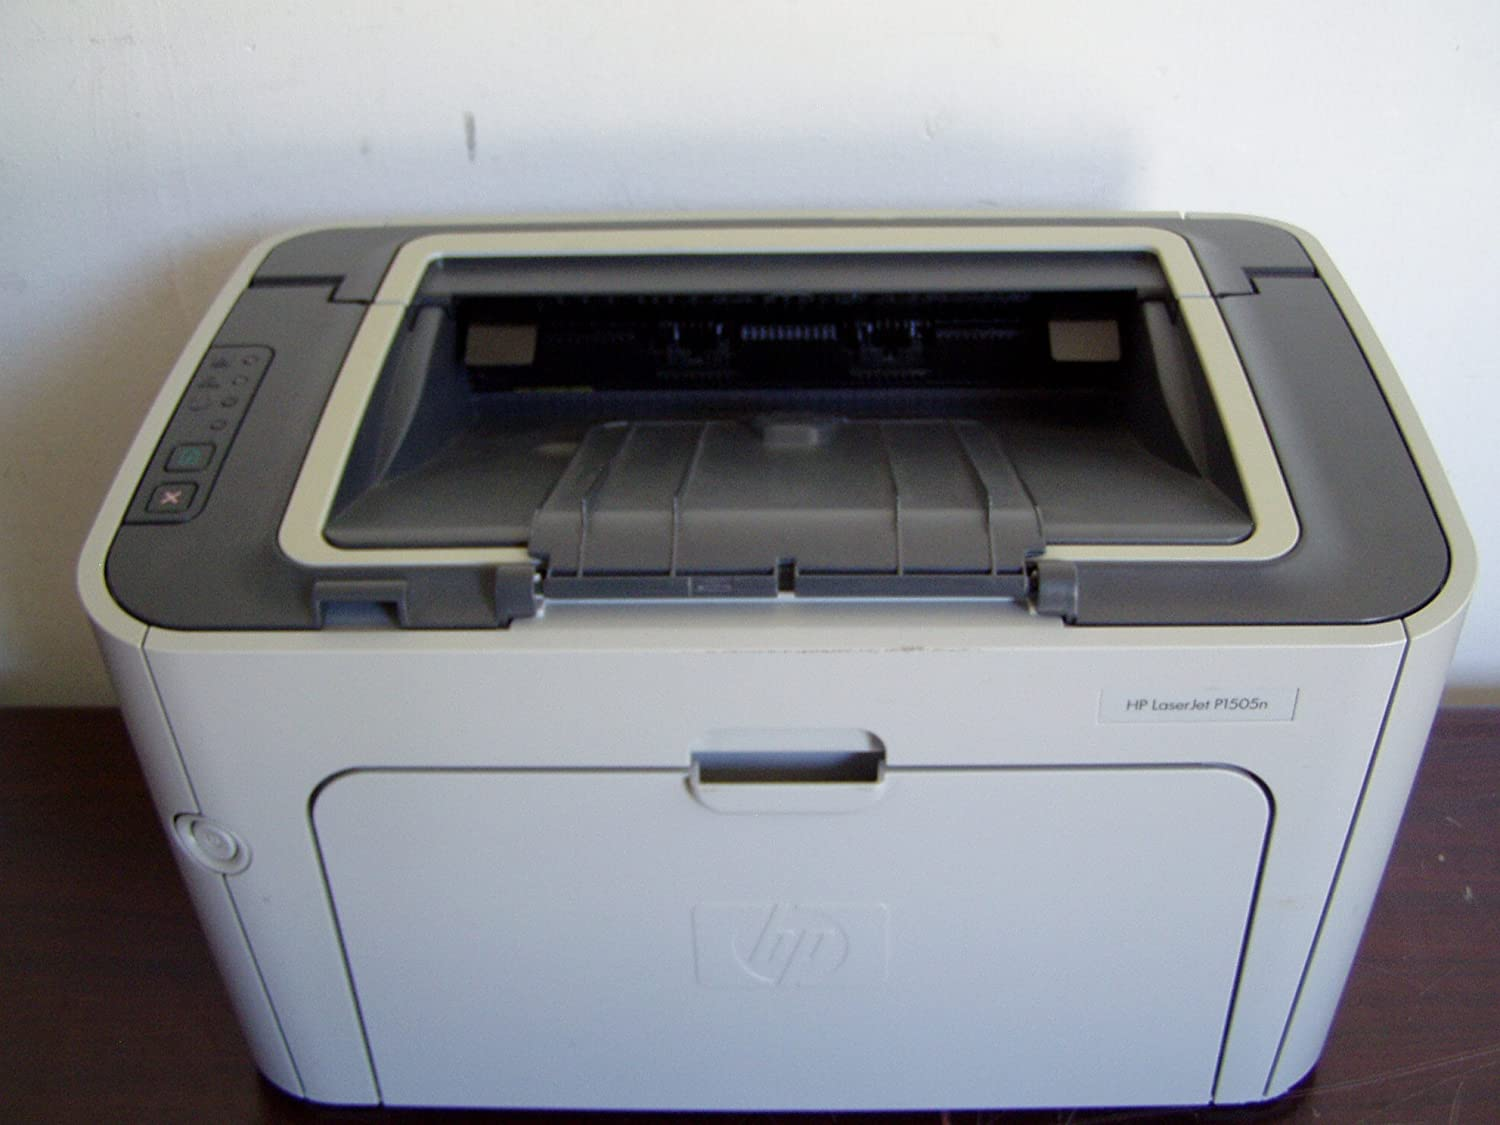 HP P1505N Laserjet Printer